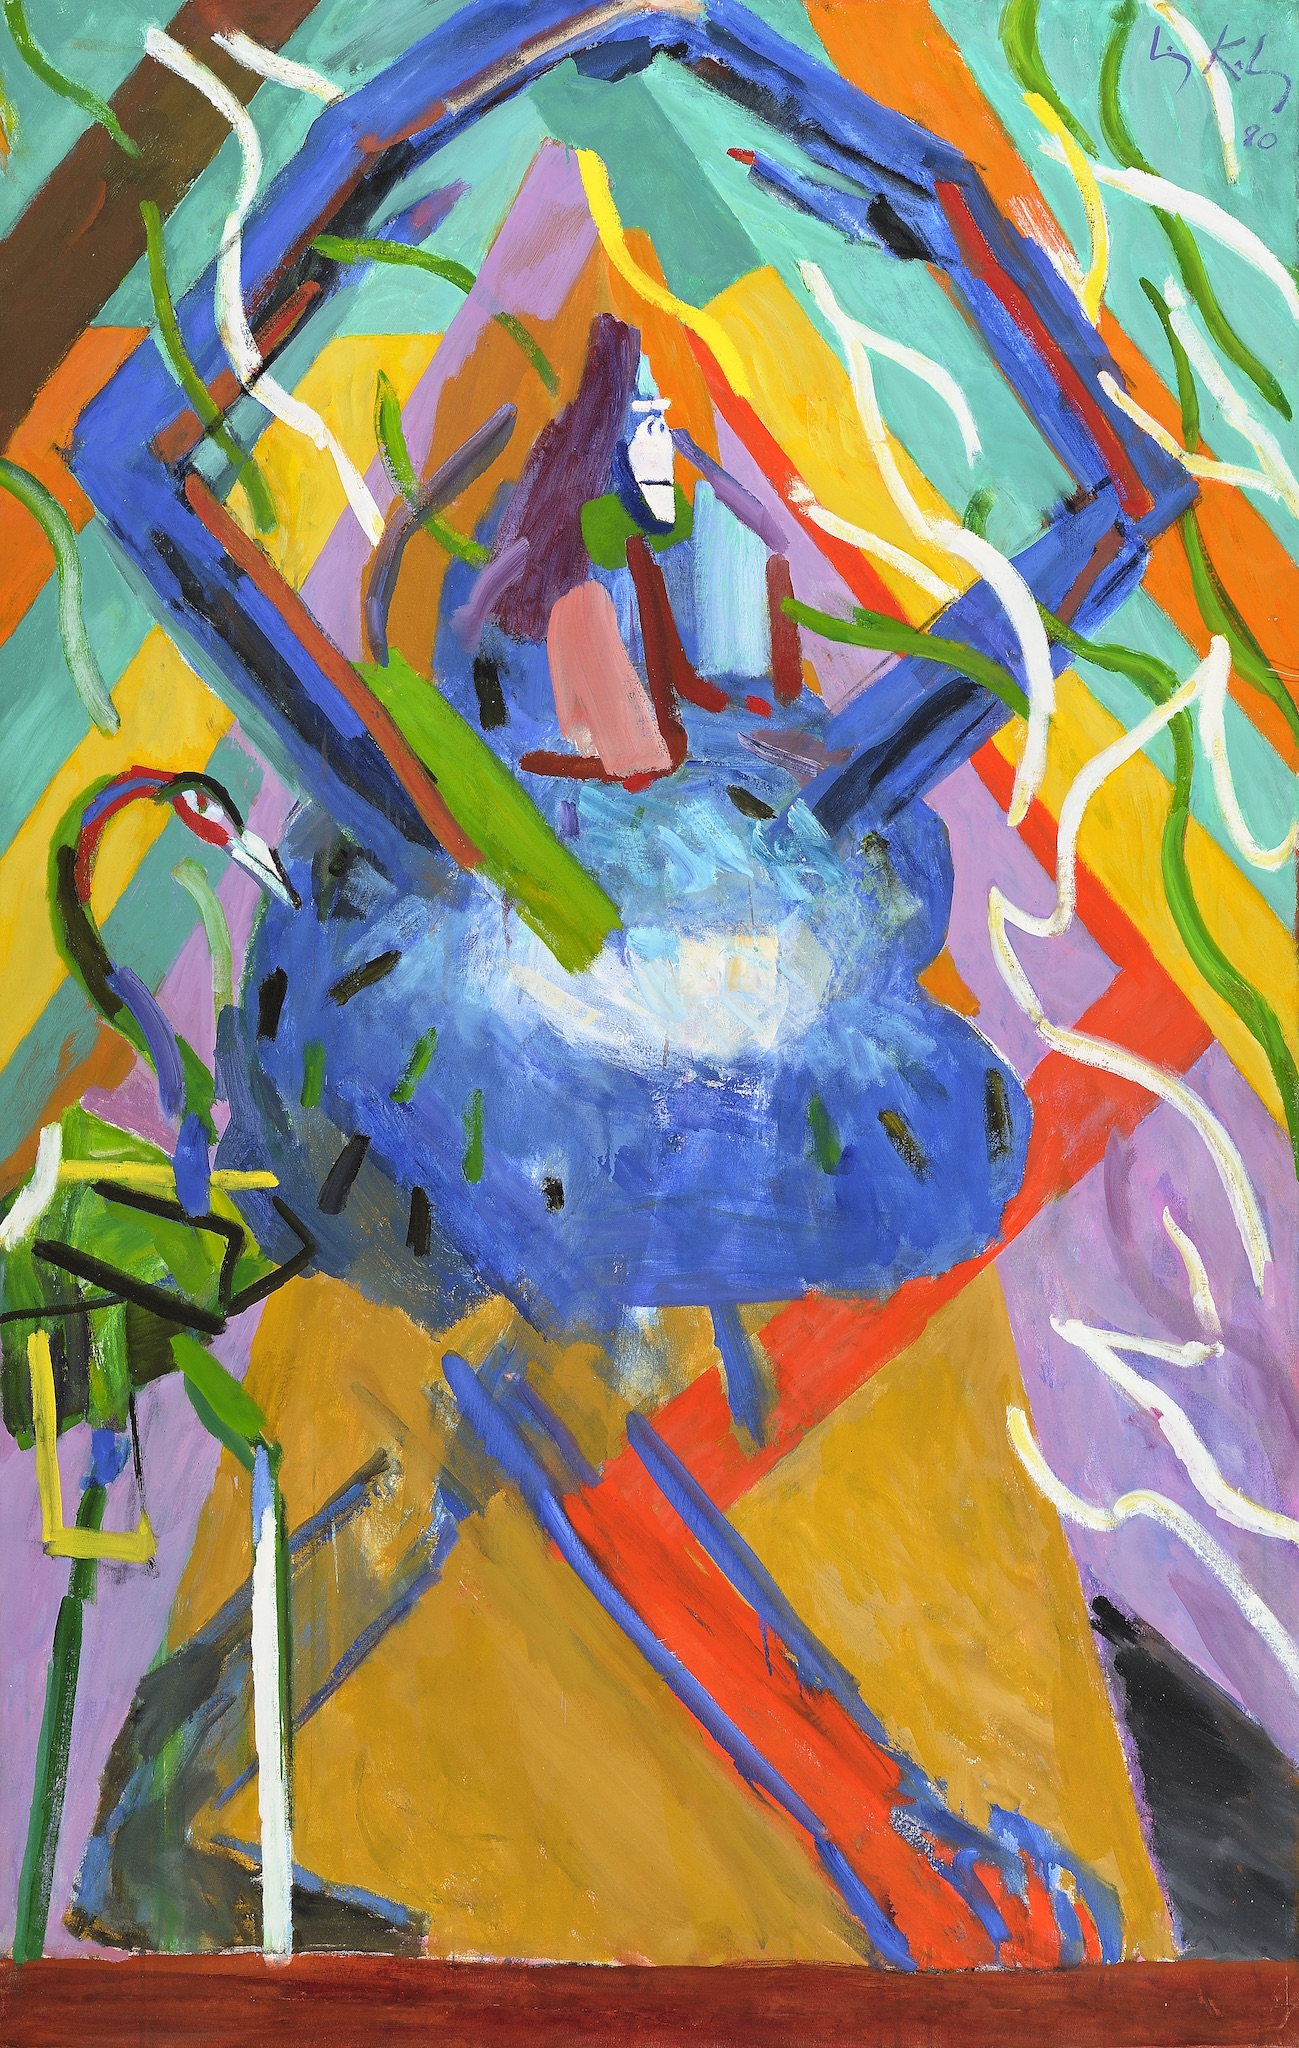 Down From the Mountain , 1980, oil on canvas, 68 x 43 1/2 in. (172.7 x 110.5 cm)